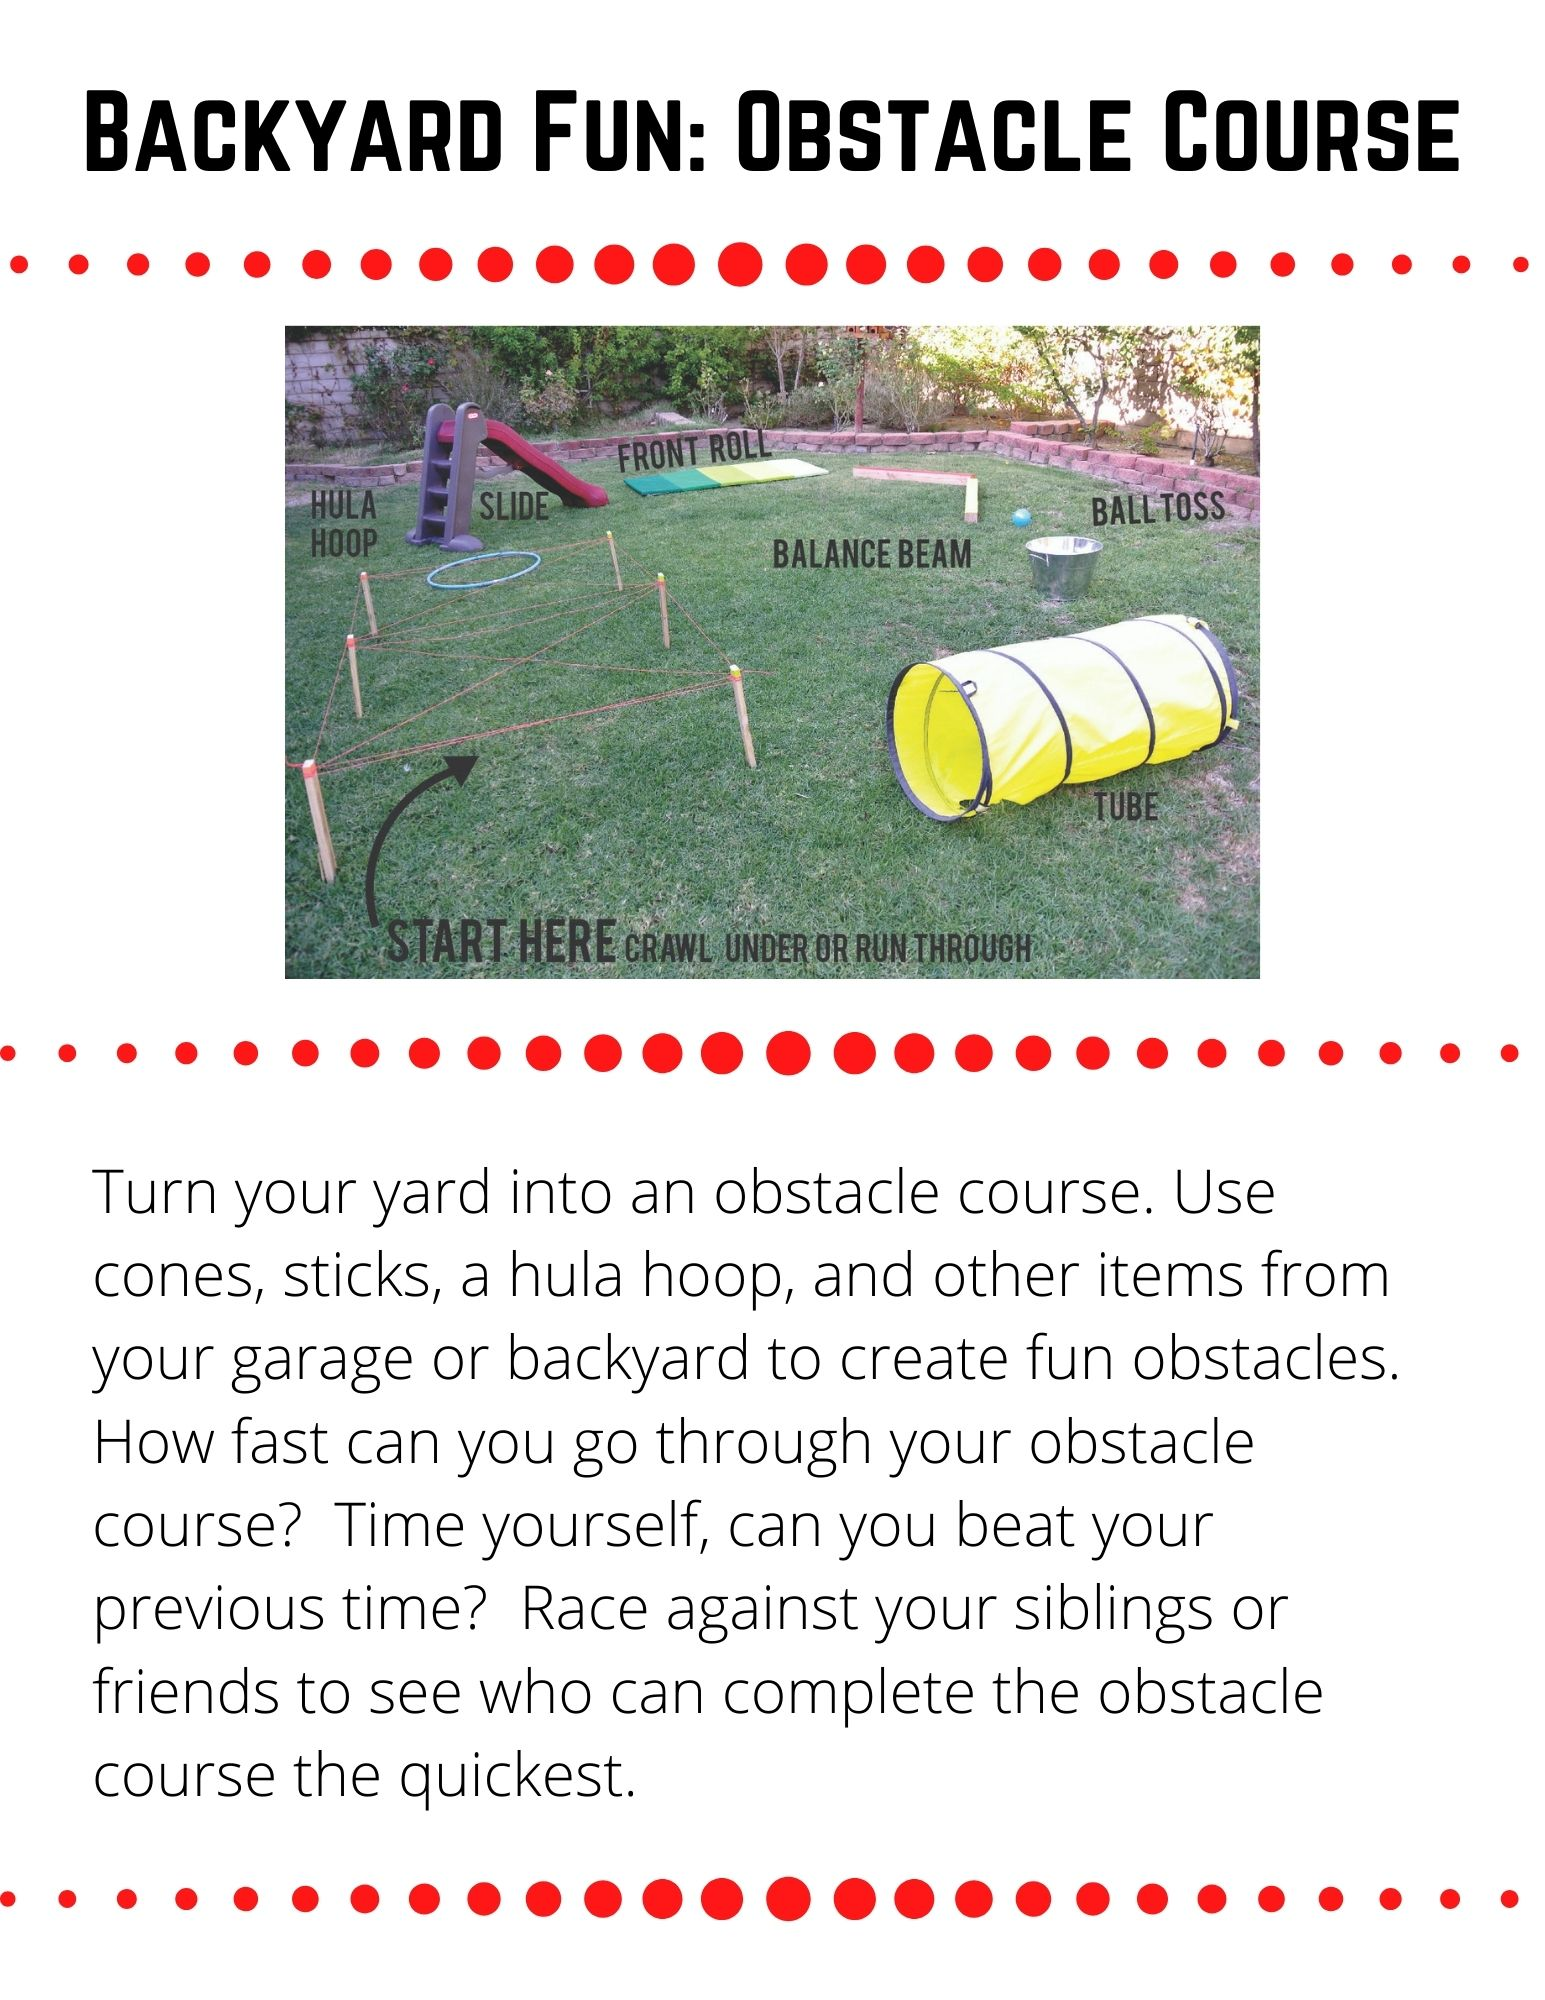 Turn your yard into an obstacle course. Use cones, sticks, a hula hoop, and other items from your garage or backyard to create fun obstacles.  How fast can you go through your obstacle course?  Time yourself, can you beat your previous time?  Race against your siblings or friends to see who can complete the obstacle course the quickest.